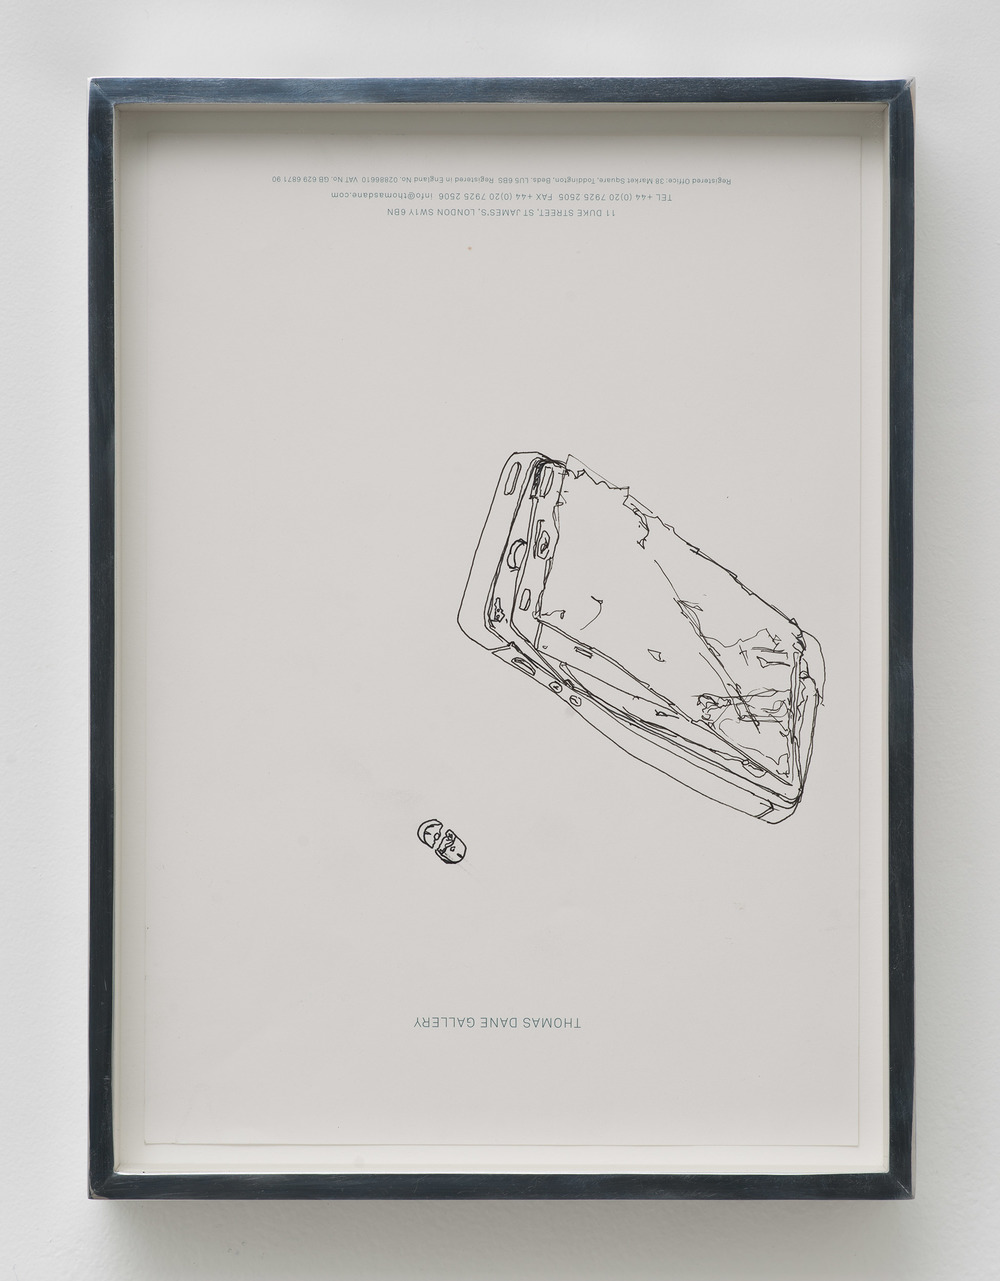 iPhone 5 A1429/Adderall, Amphetamine and Dextroamphetamine 10 mg, cor 132, Round, Multi-Segmented, Core Pharmaceuticals, Inc.: Thomas Dane Gallery, London, United Kingdom, September 27, 2014    2015   Ink on letterhead  12 7/8 x  9 1/2 inches   Drawings, 2014–